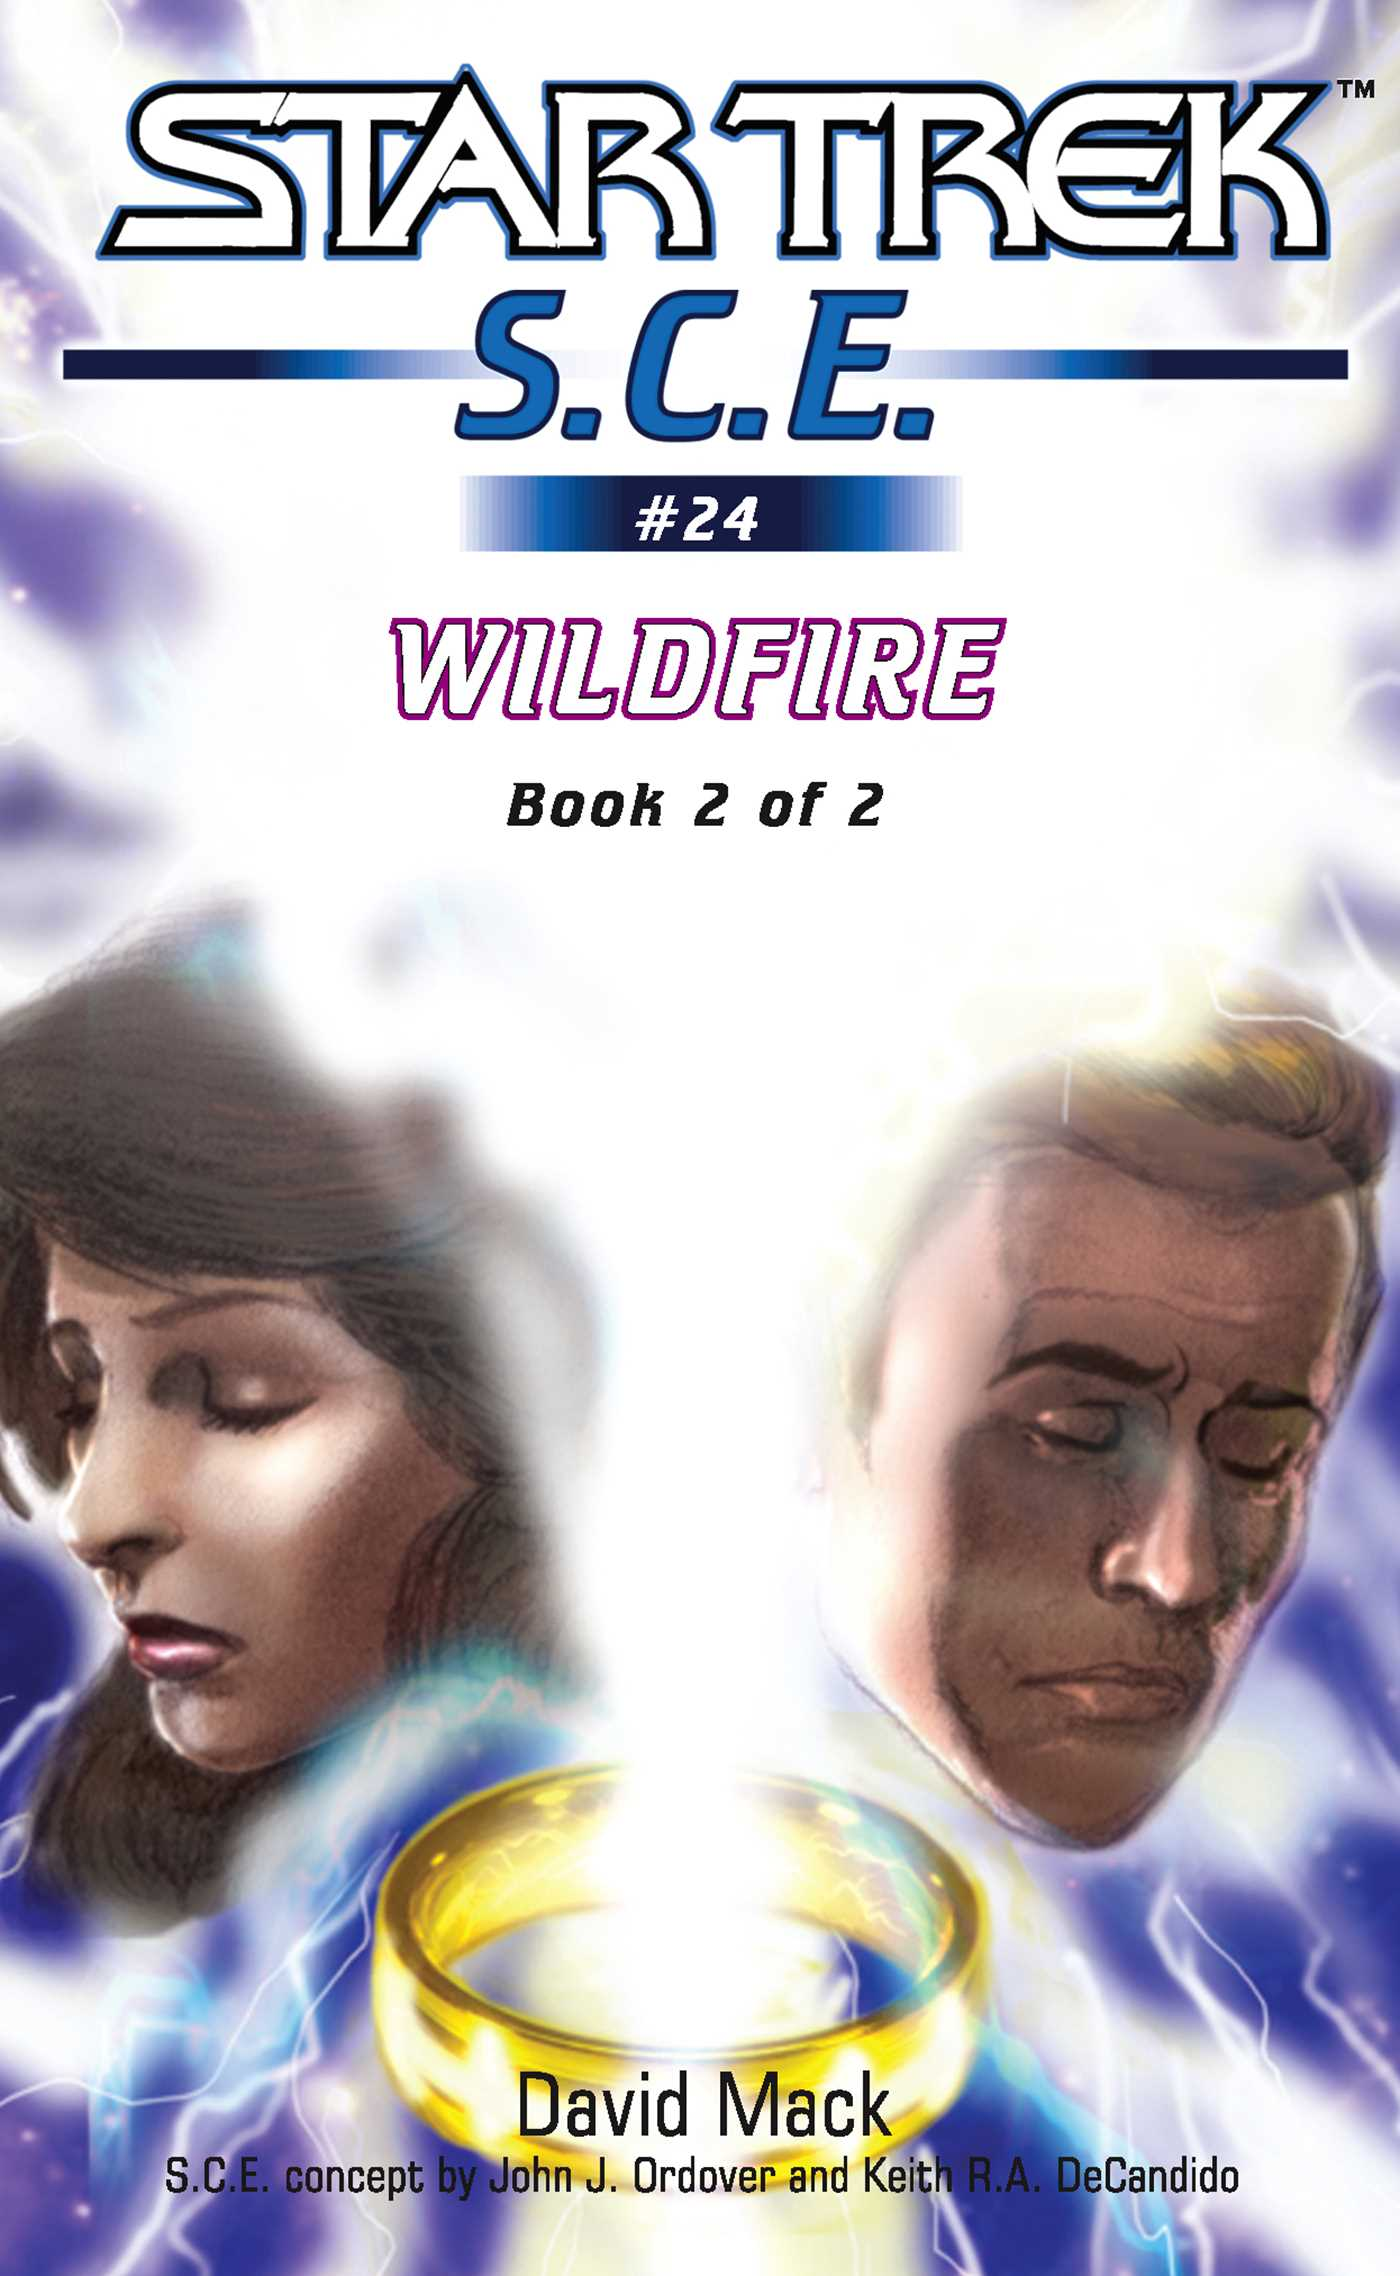 Wildfire-book-2-9780743456791_hr